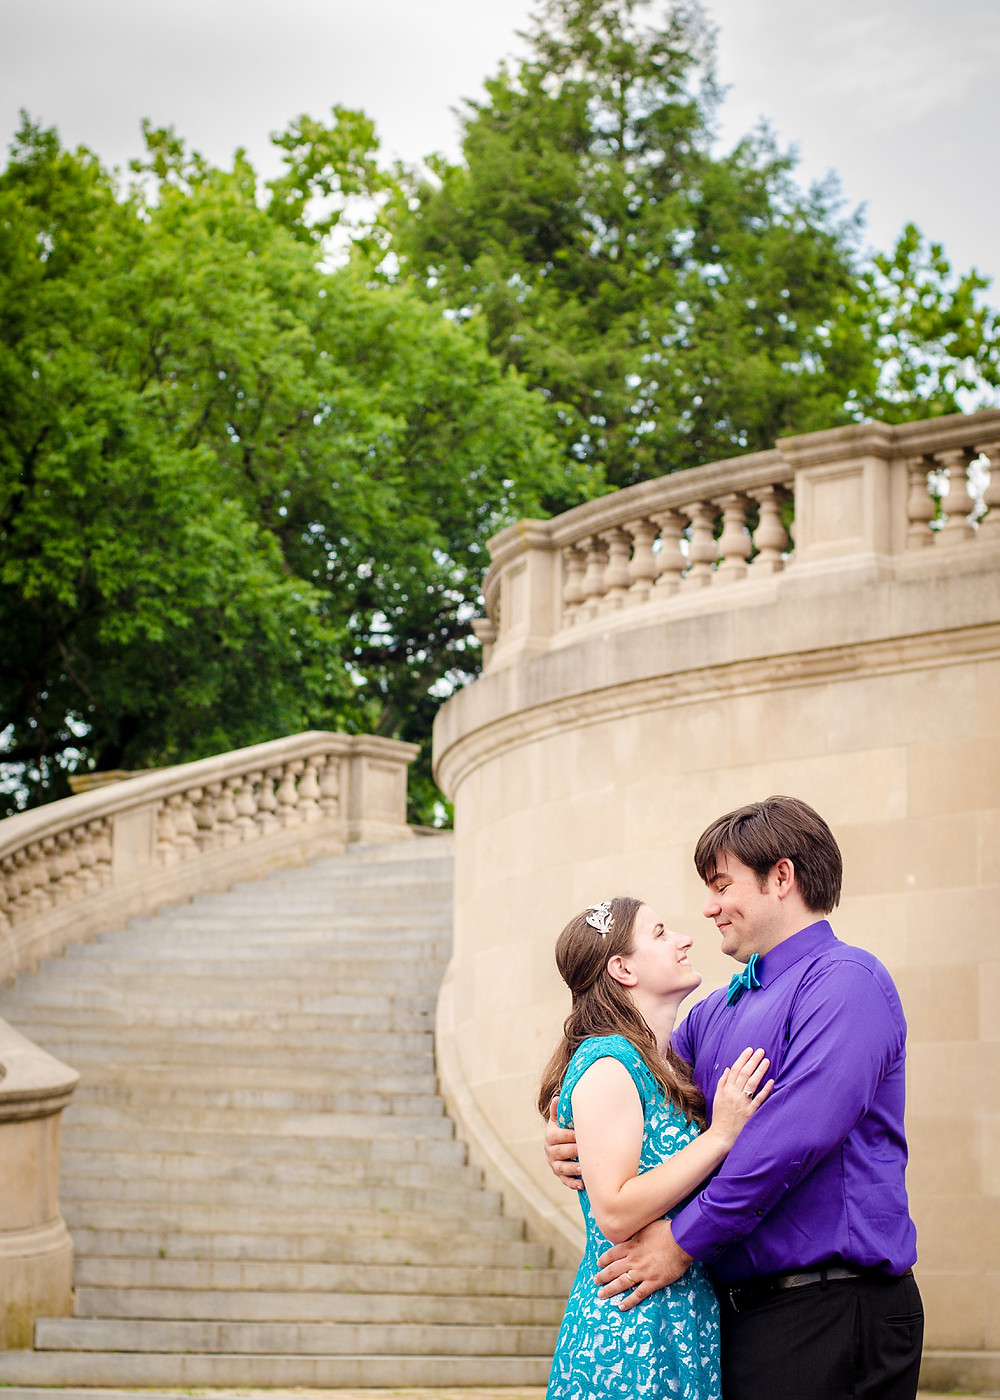 Byrd Park and the Carillon Richmond VA engagement photography